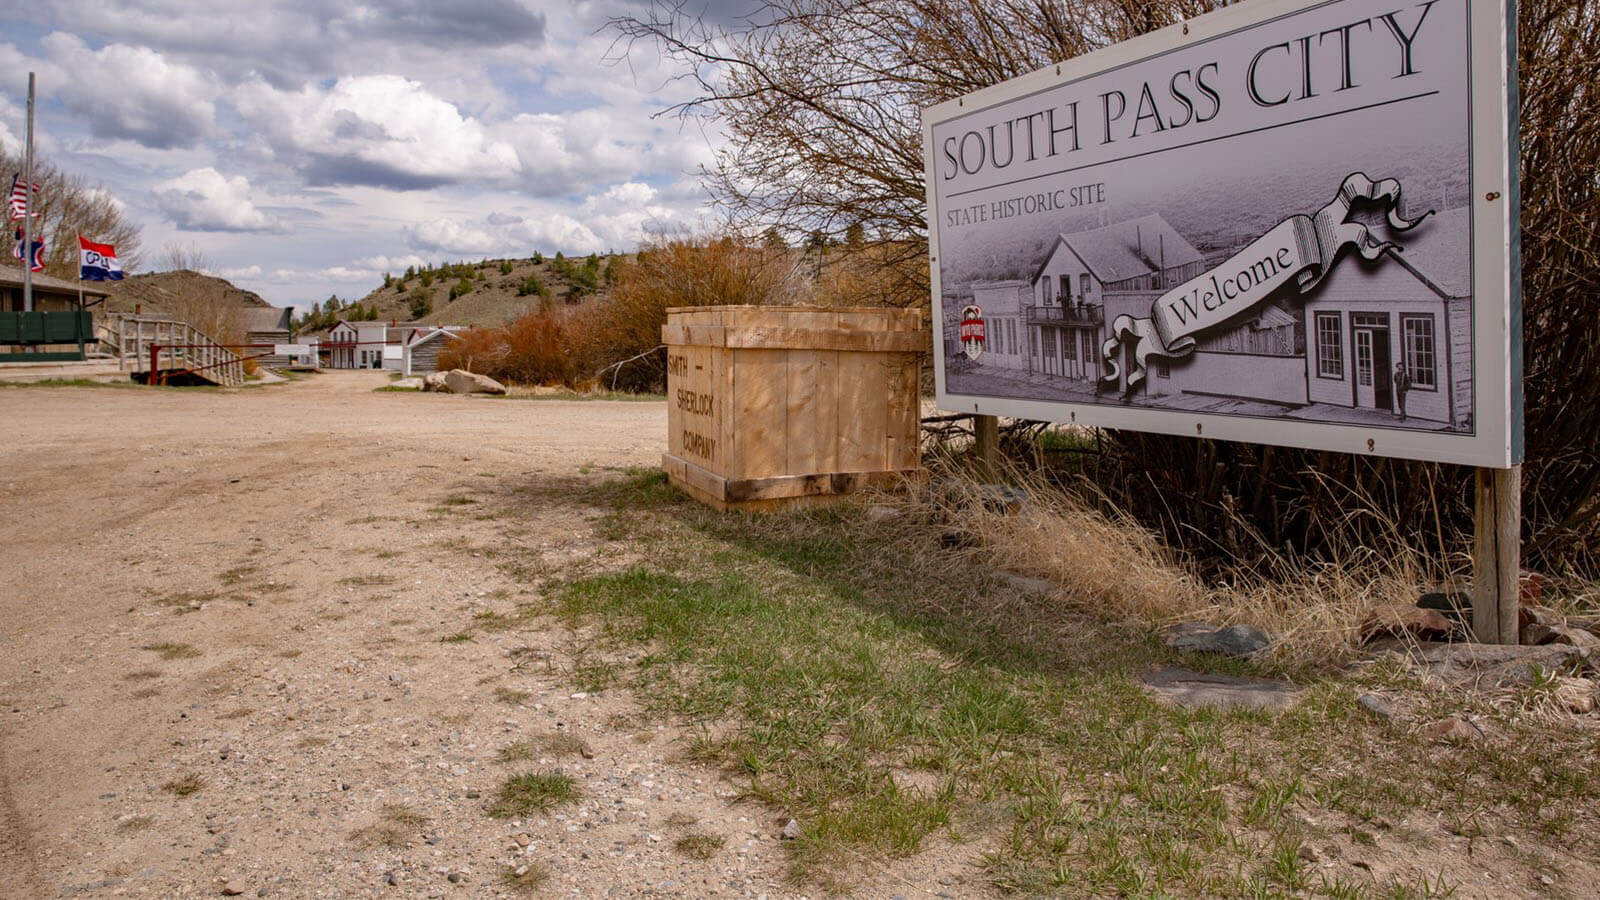 South Pass City State Historic Site welcome sign